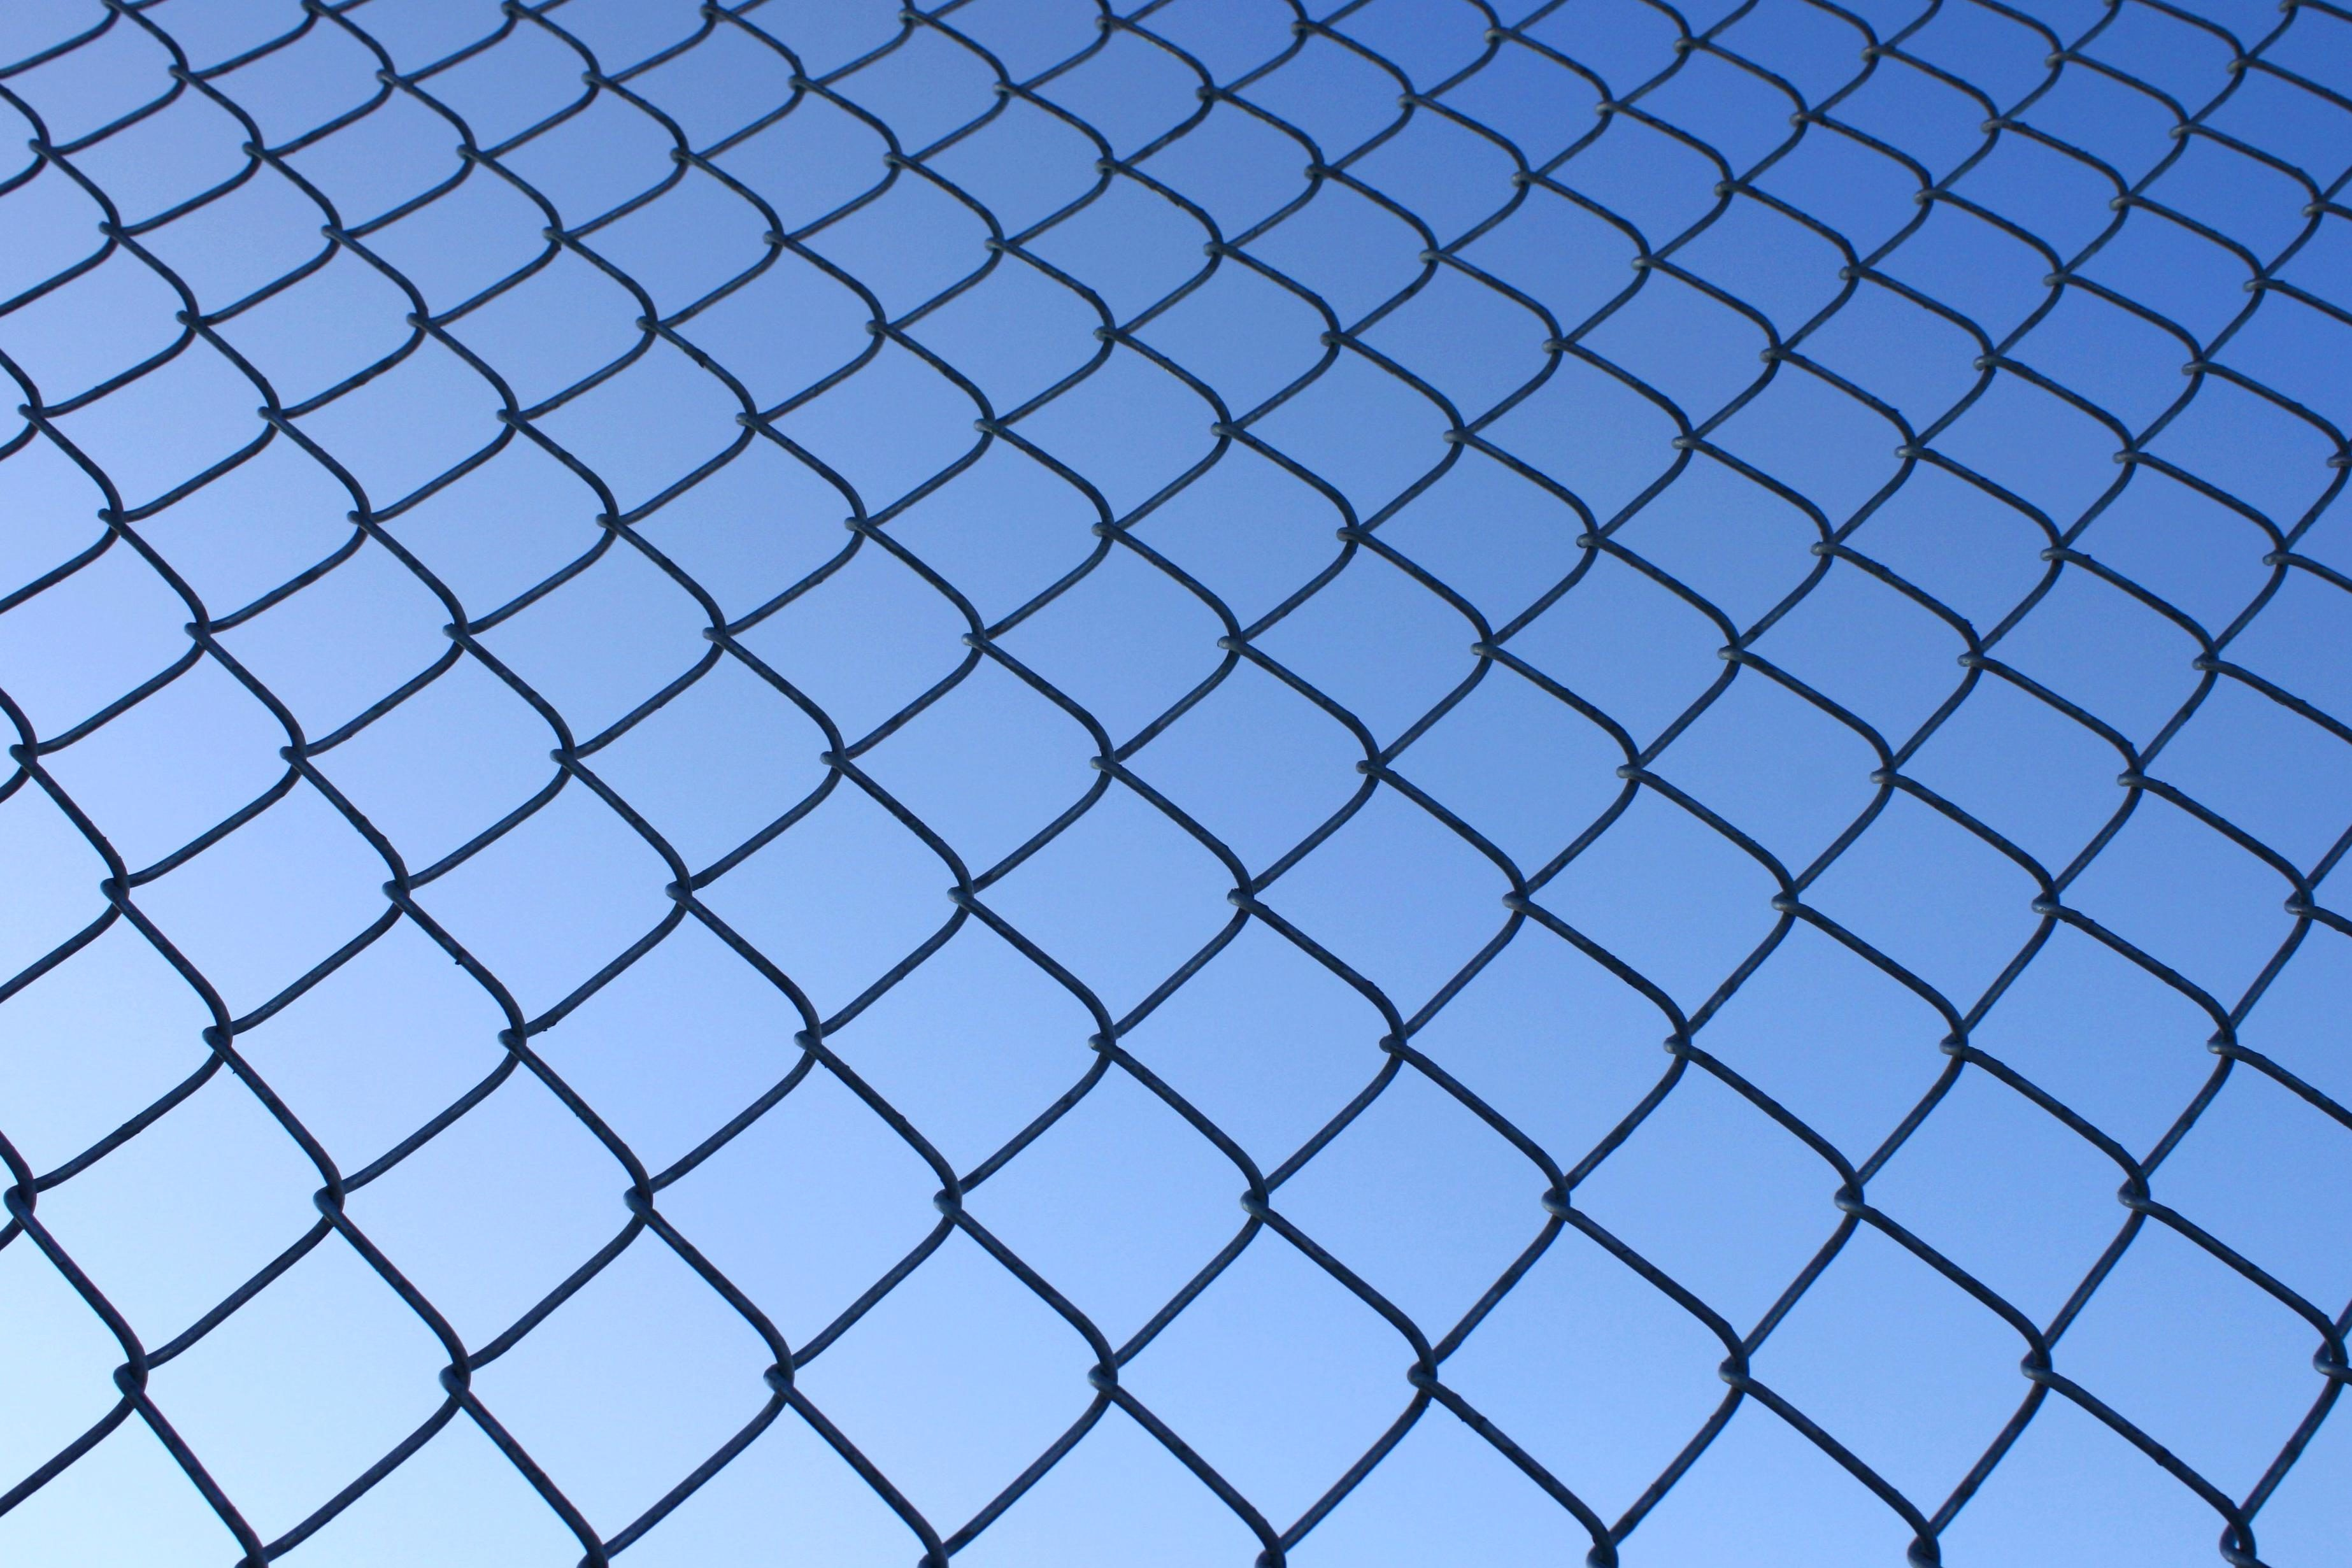 Free picture: wire fence, texture